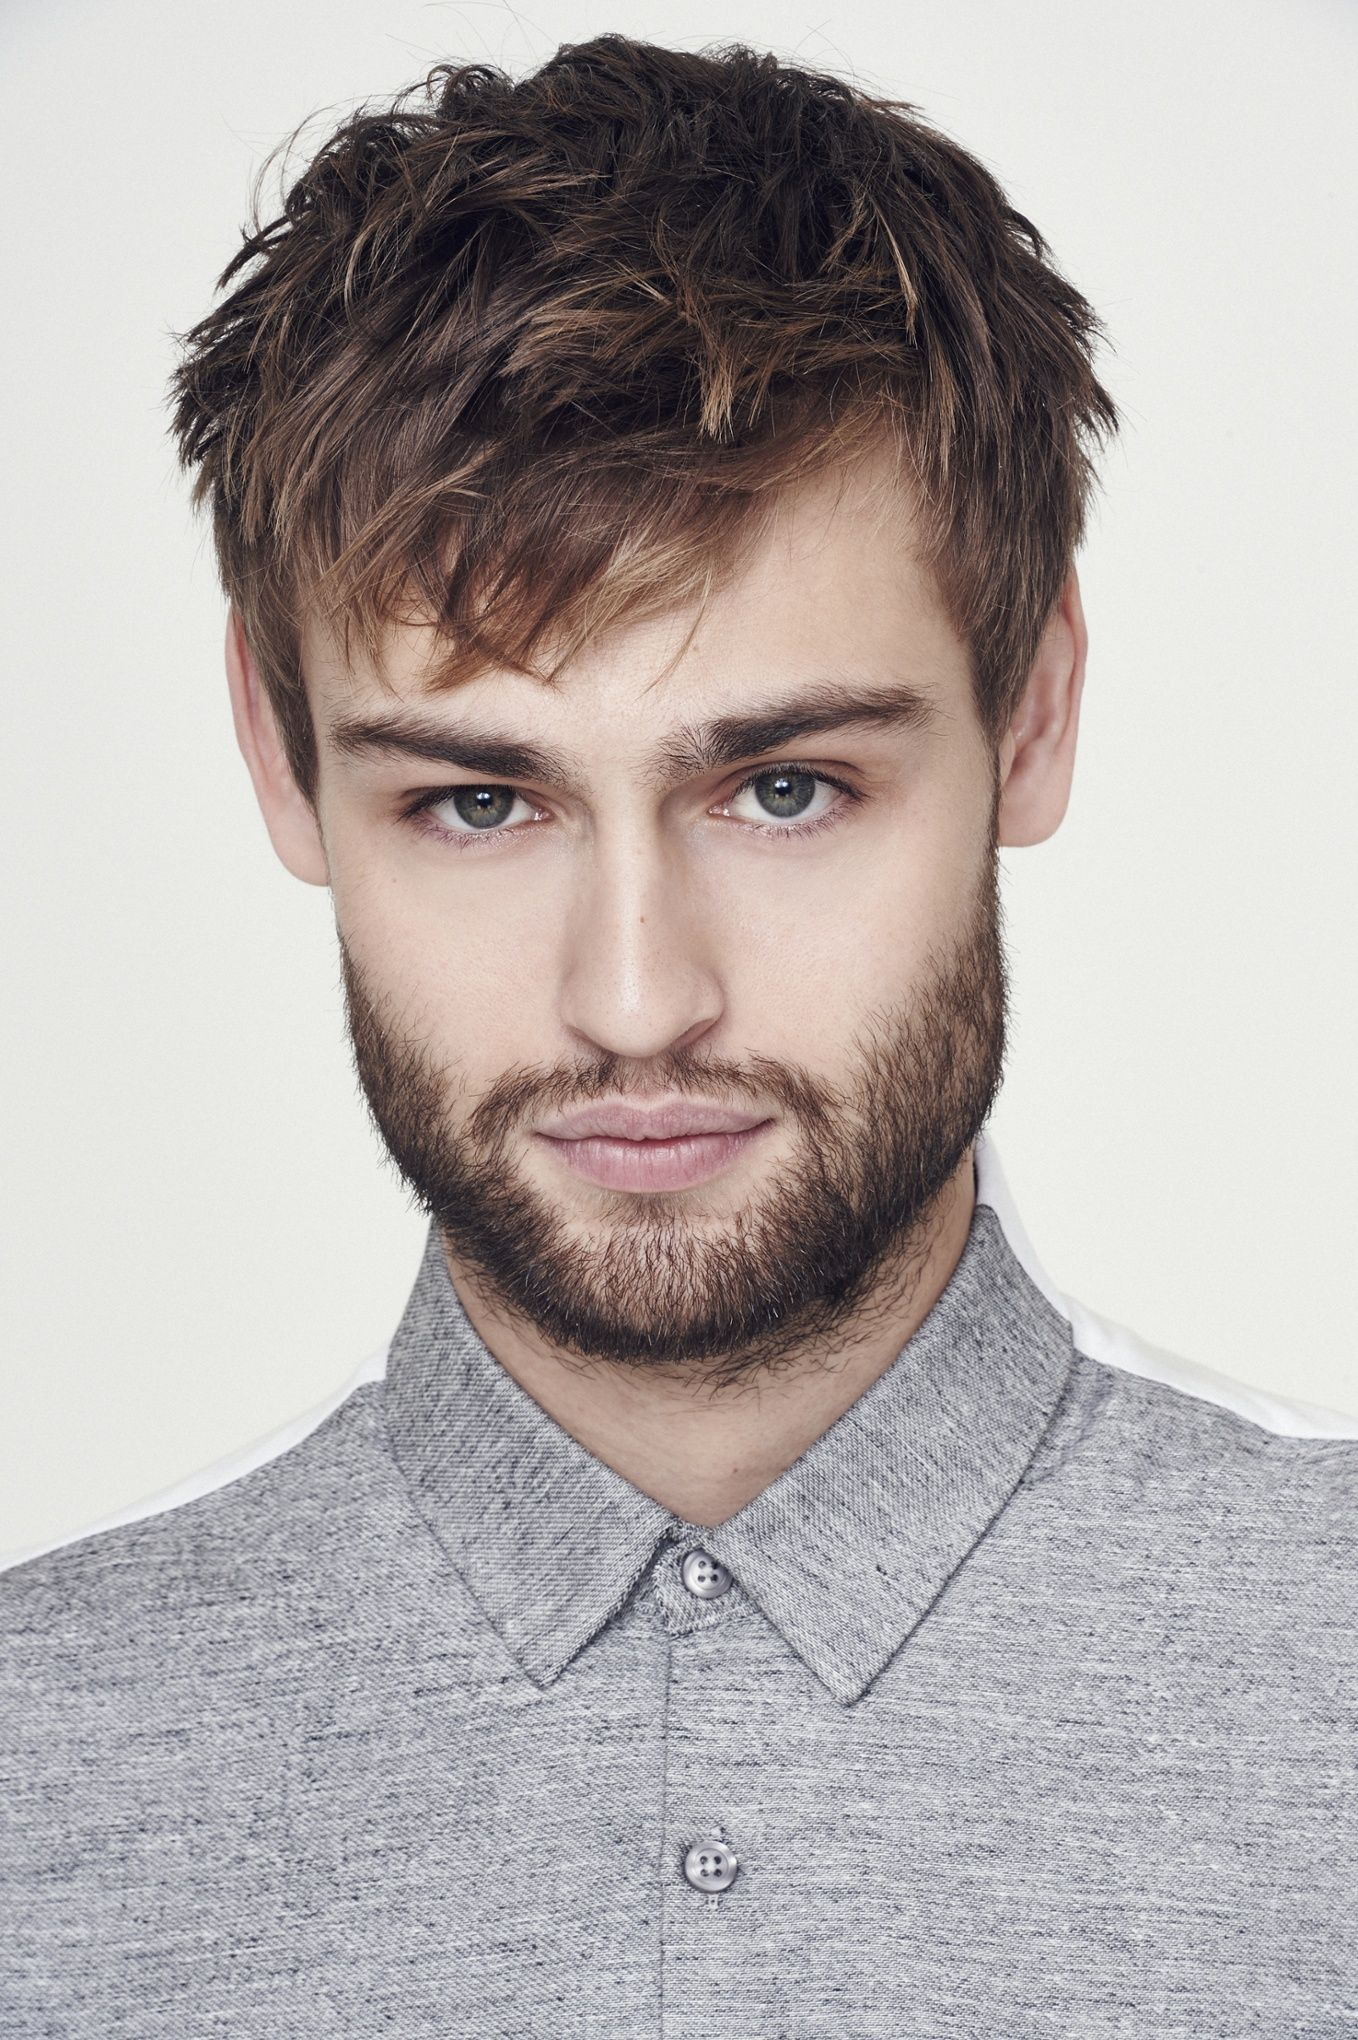 Douglas booth models menswear for spring u in pictures